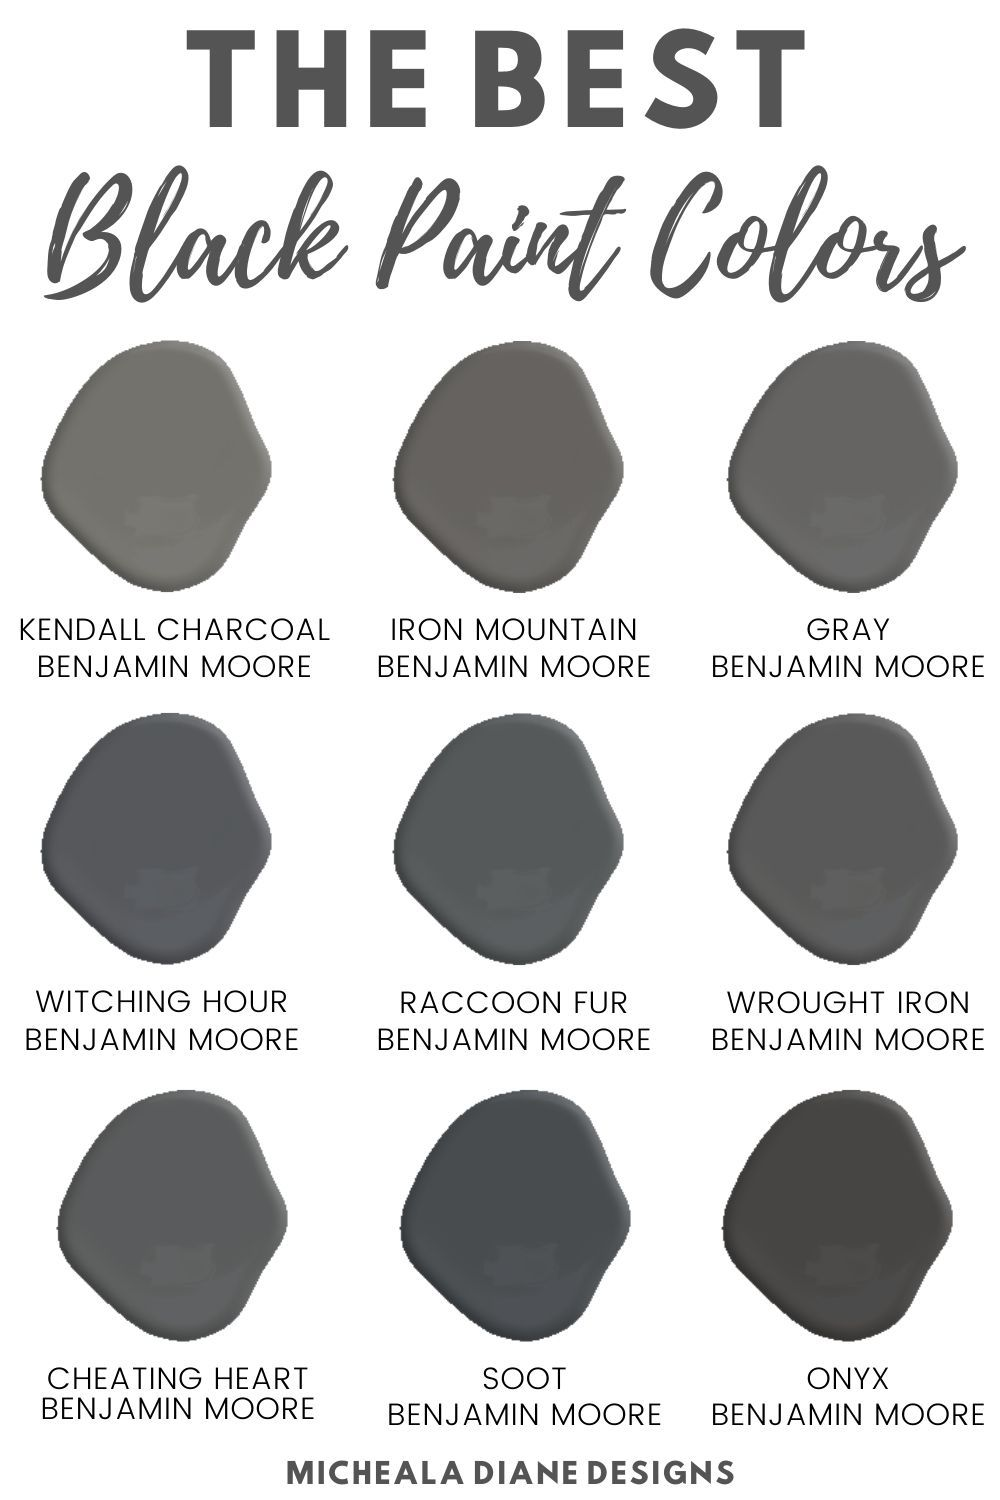 The Best Black Paint Colors Micheala Diane Designs